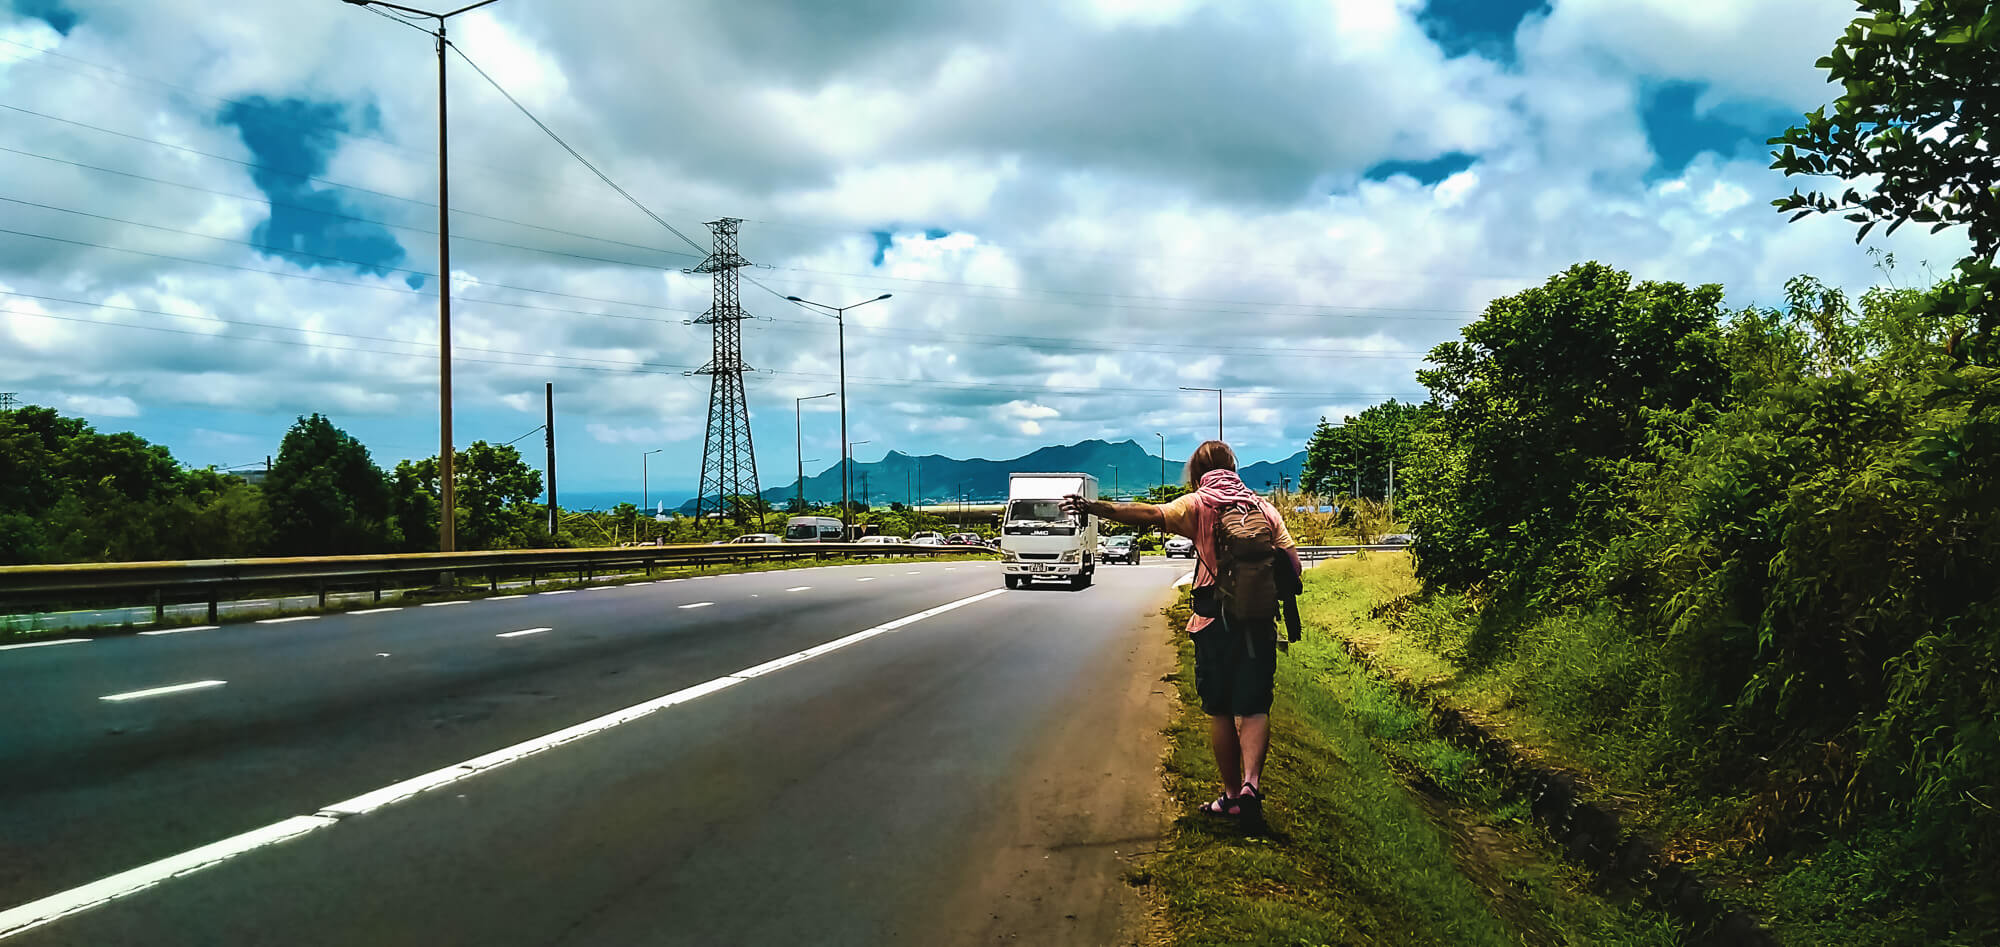 A traveller in Mauritius hitchhikes to reduce his trip cost